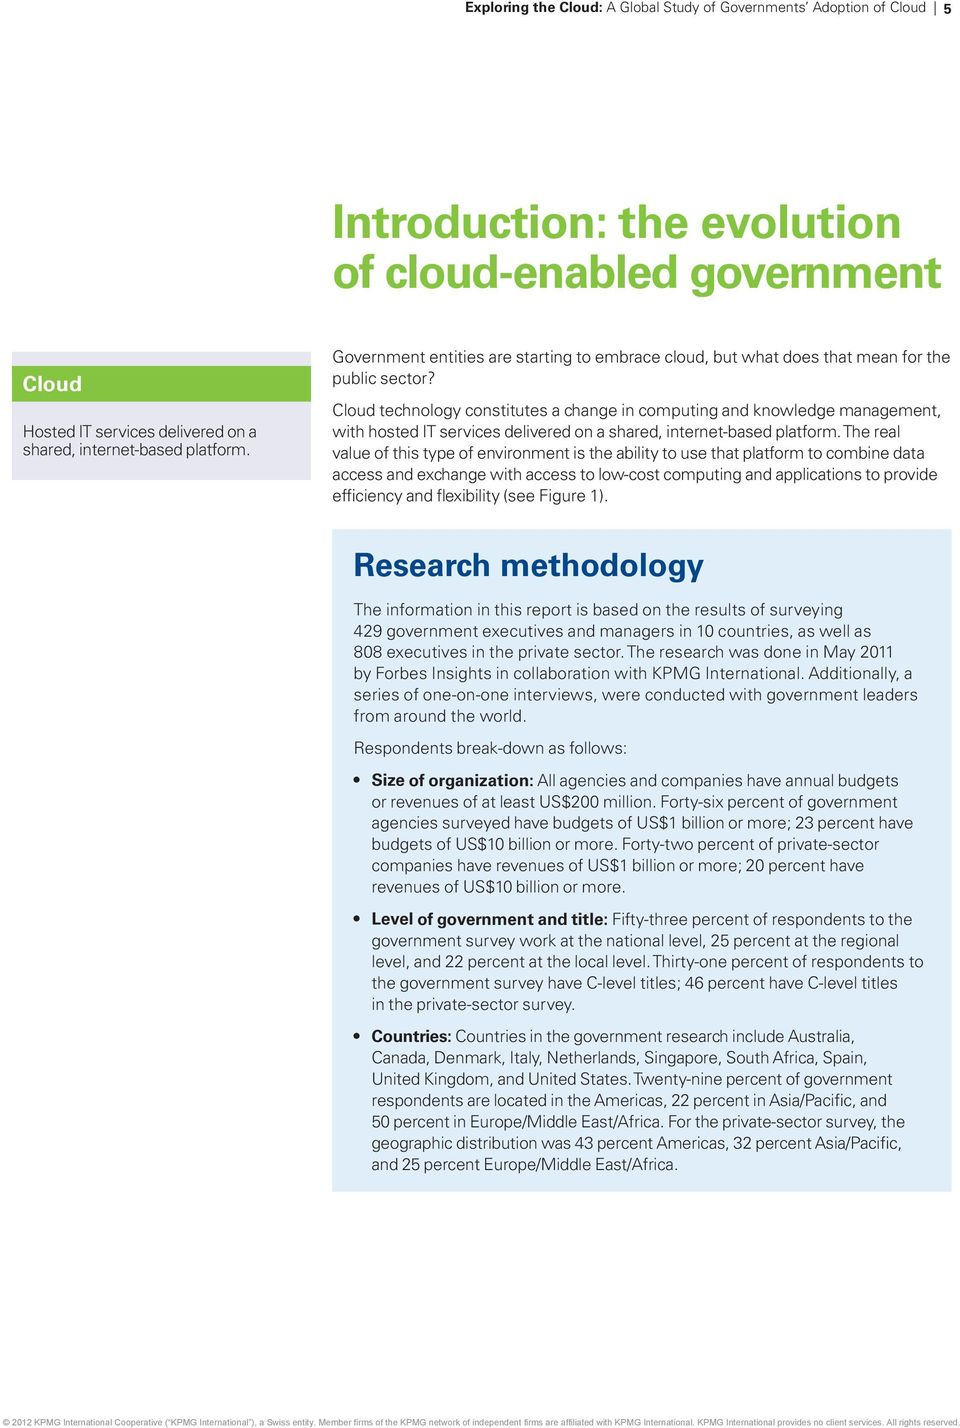 Cloud technology constitutes a change in computing and knowledge management, with hosted IT services delivered on a shared, internet-based platform.